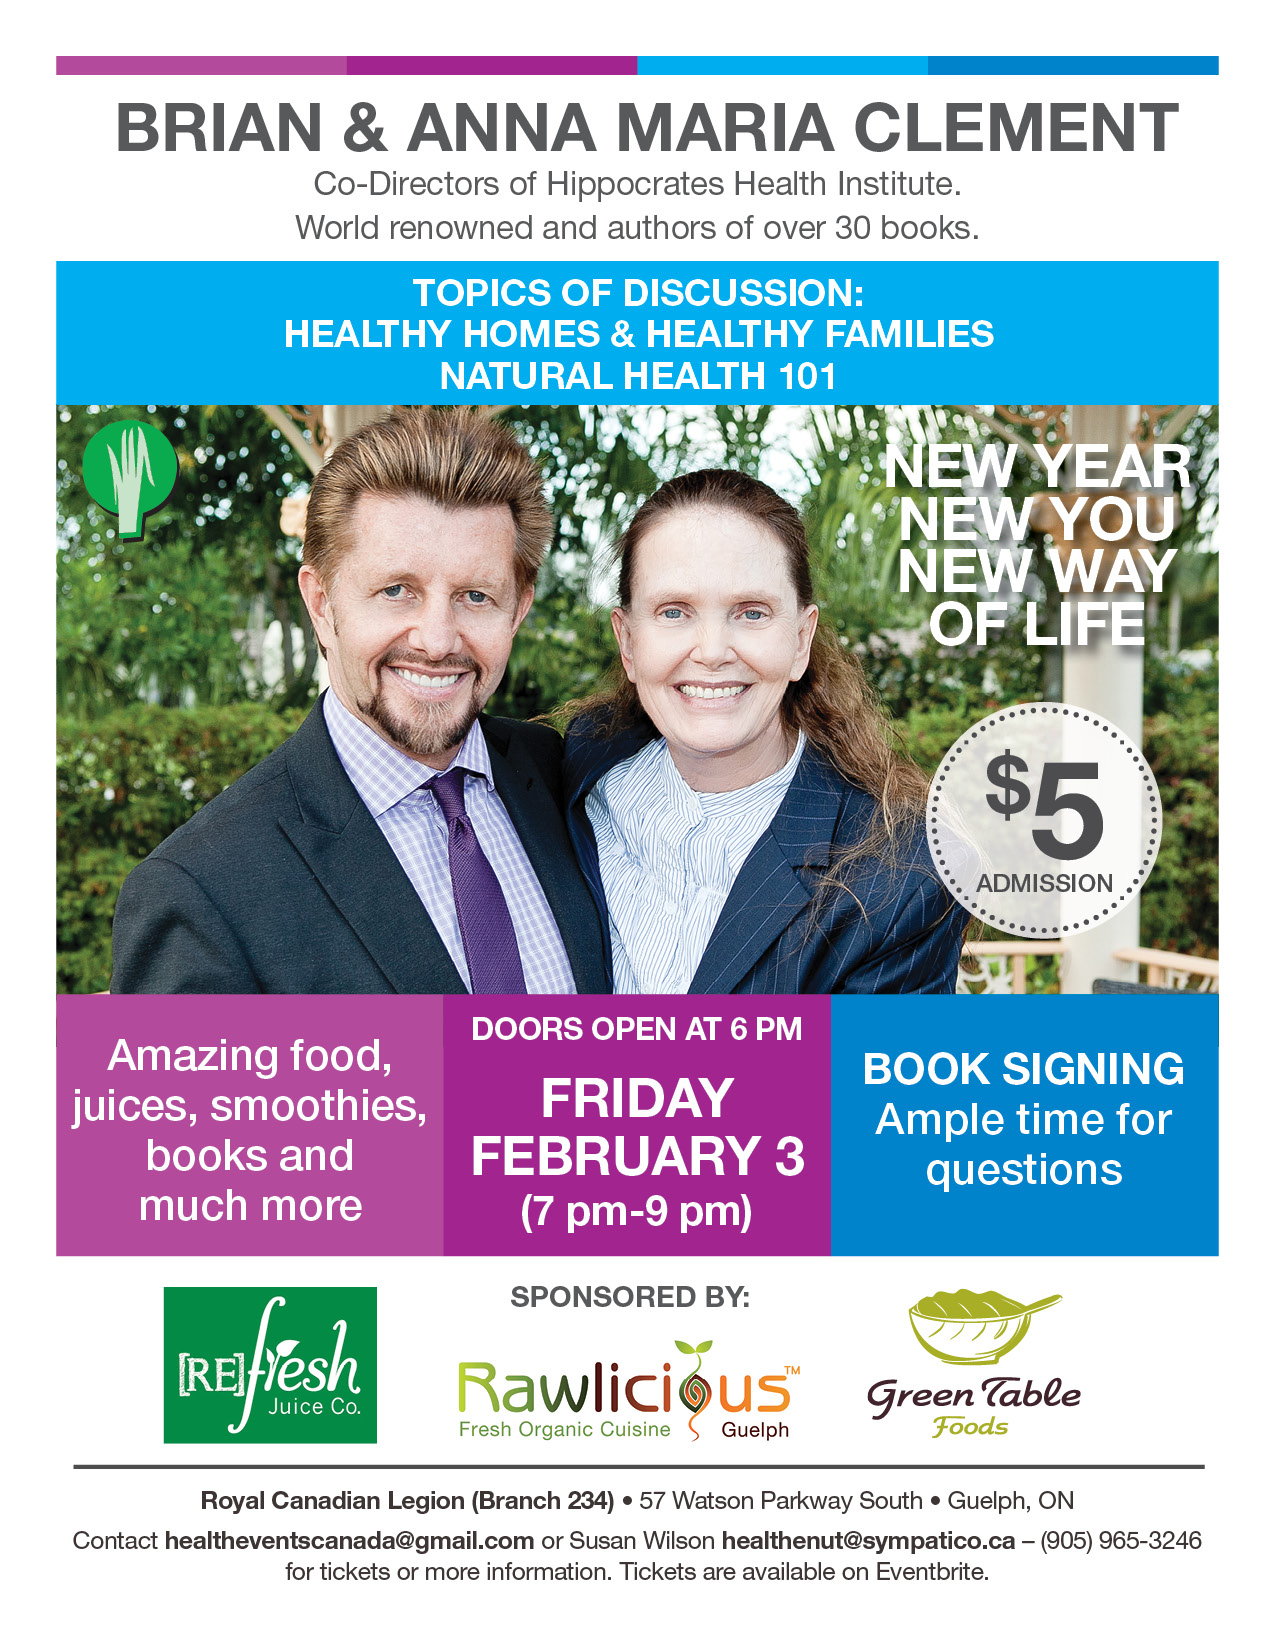 Natural Health 101 with Brian & Anna Maria Clement